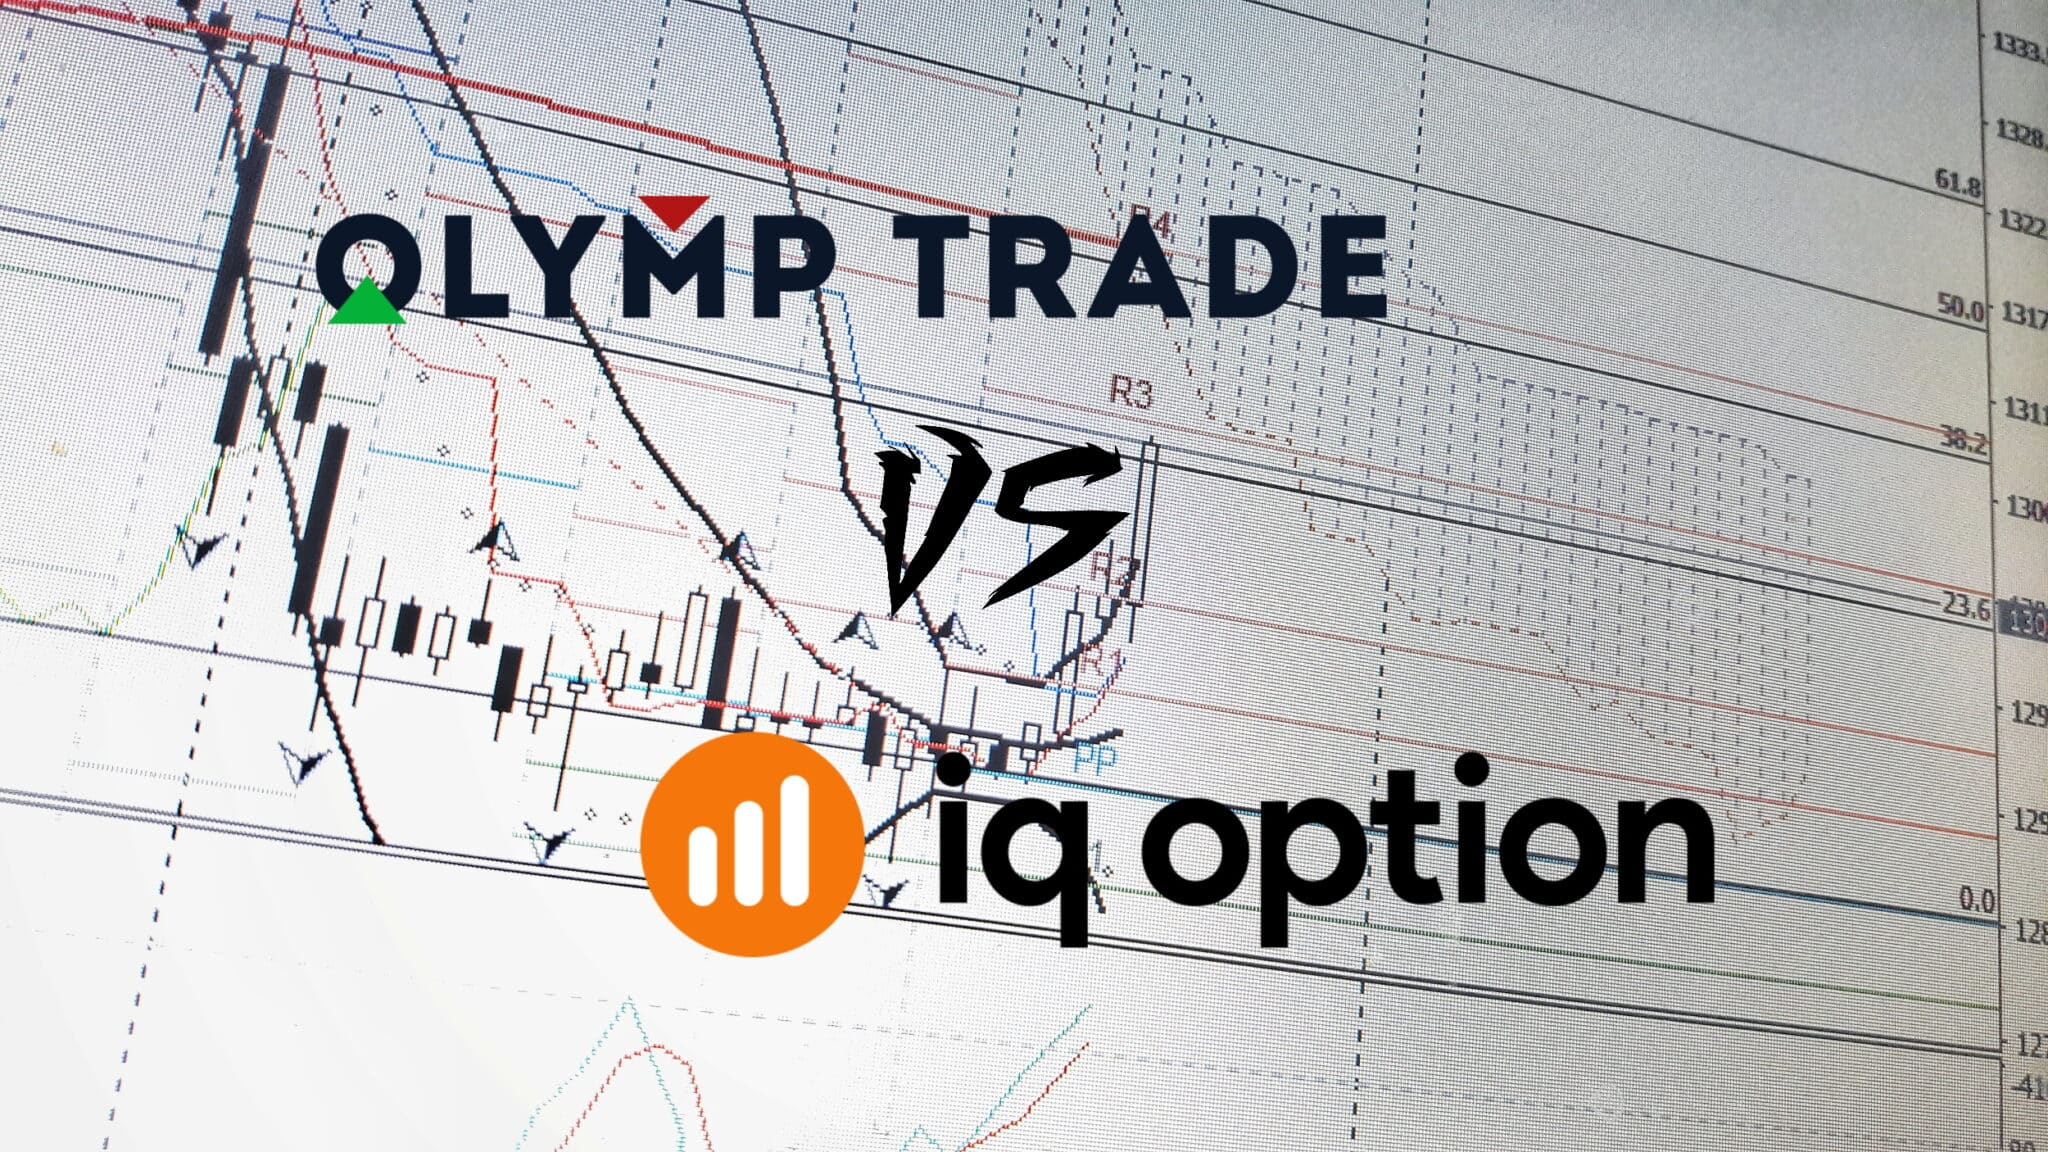 Olymp Trade & IQ Option